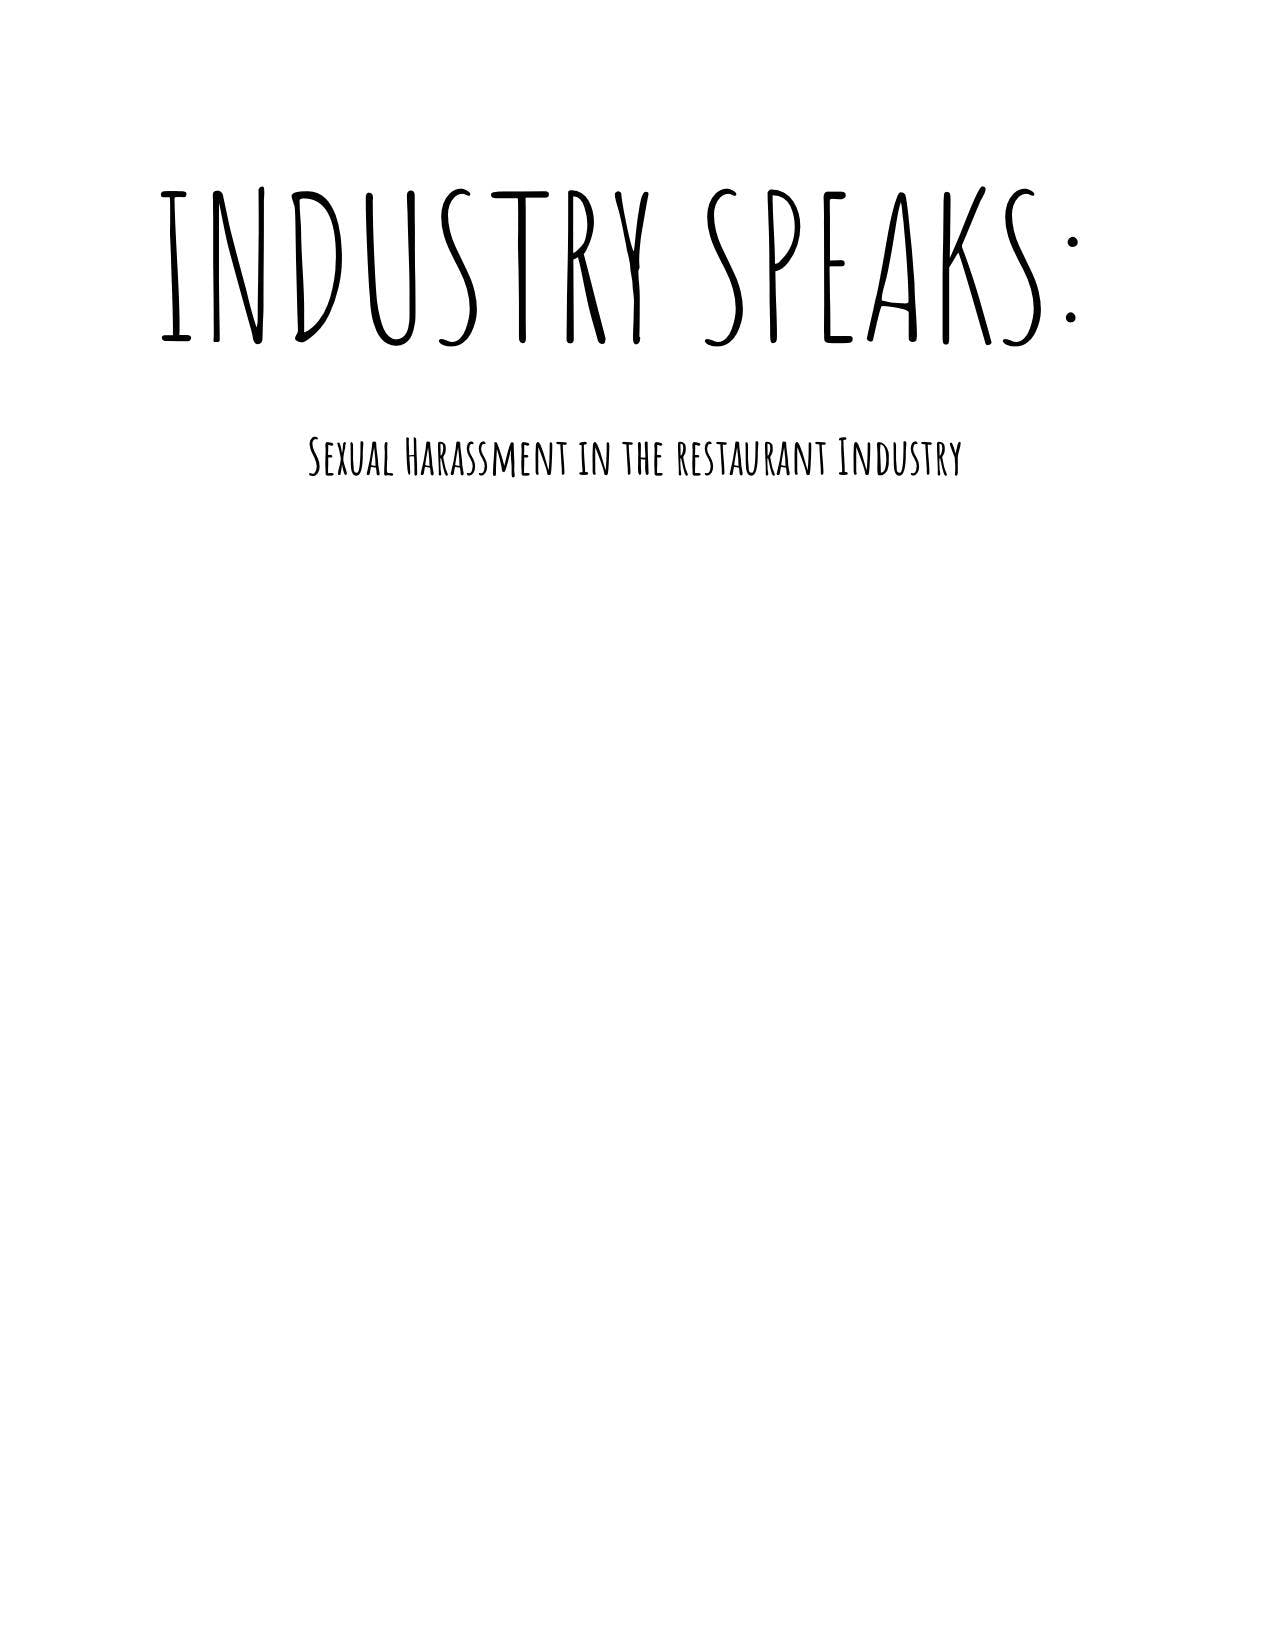 Copy of Industry Speaks: Sexual Harassment in